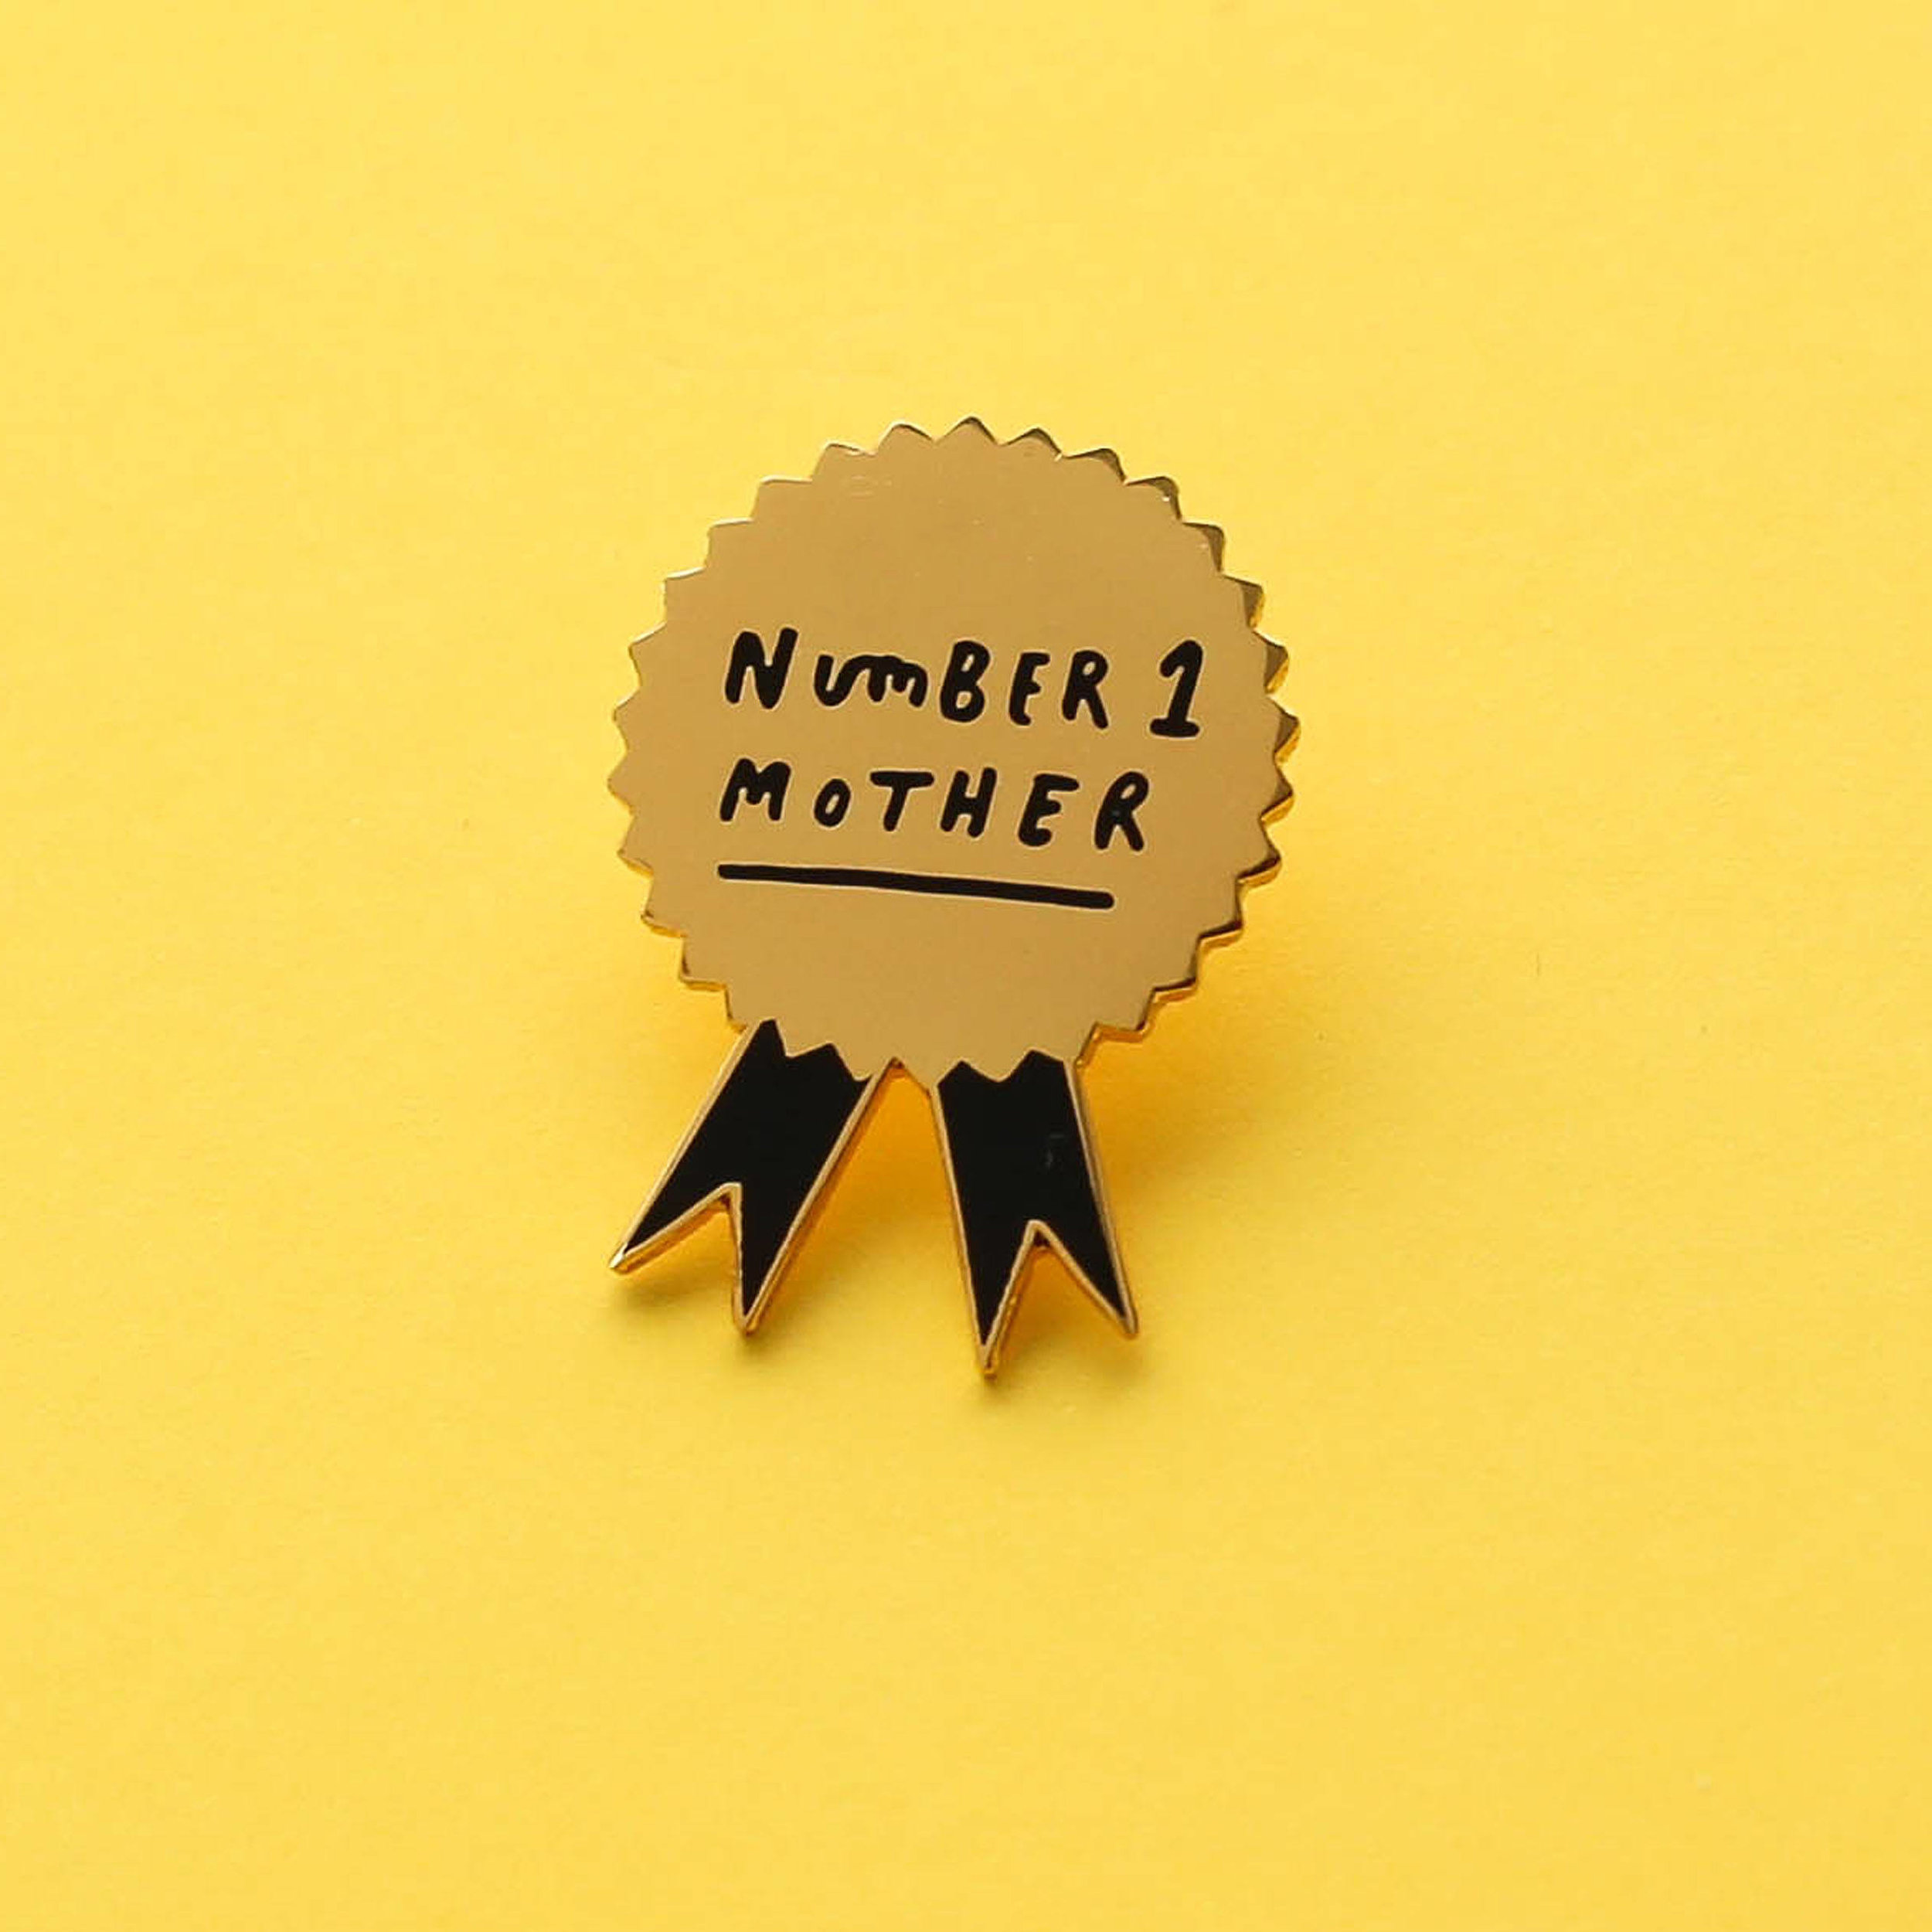 Number 1 Mother enamel pin badge by  OldEnglishCo